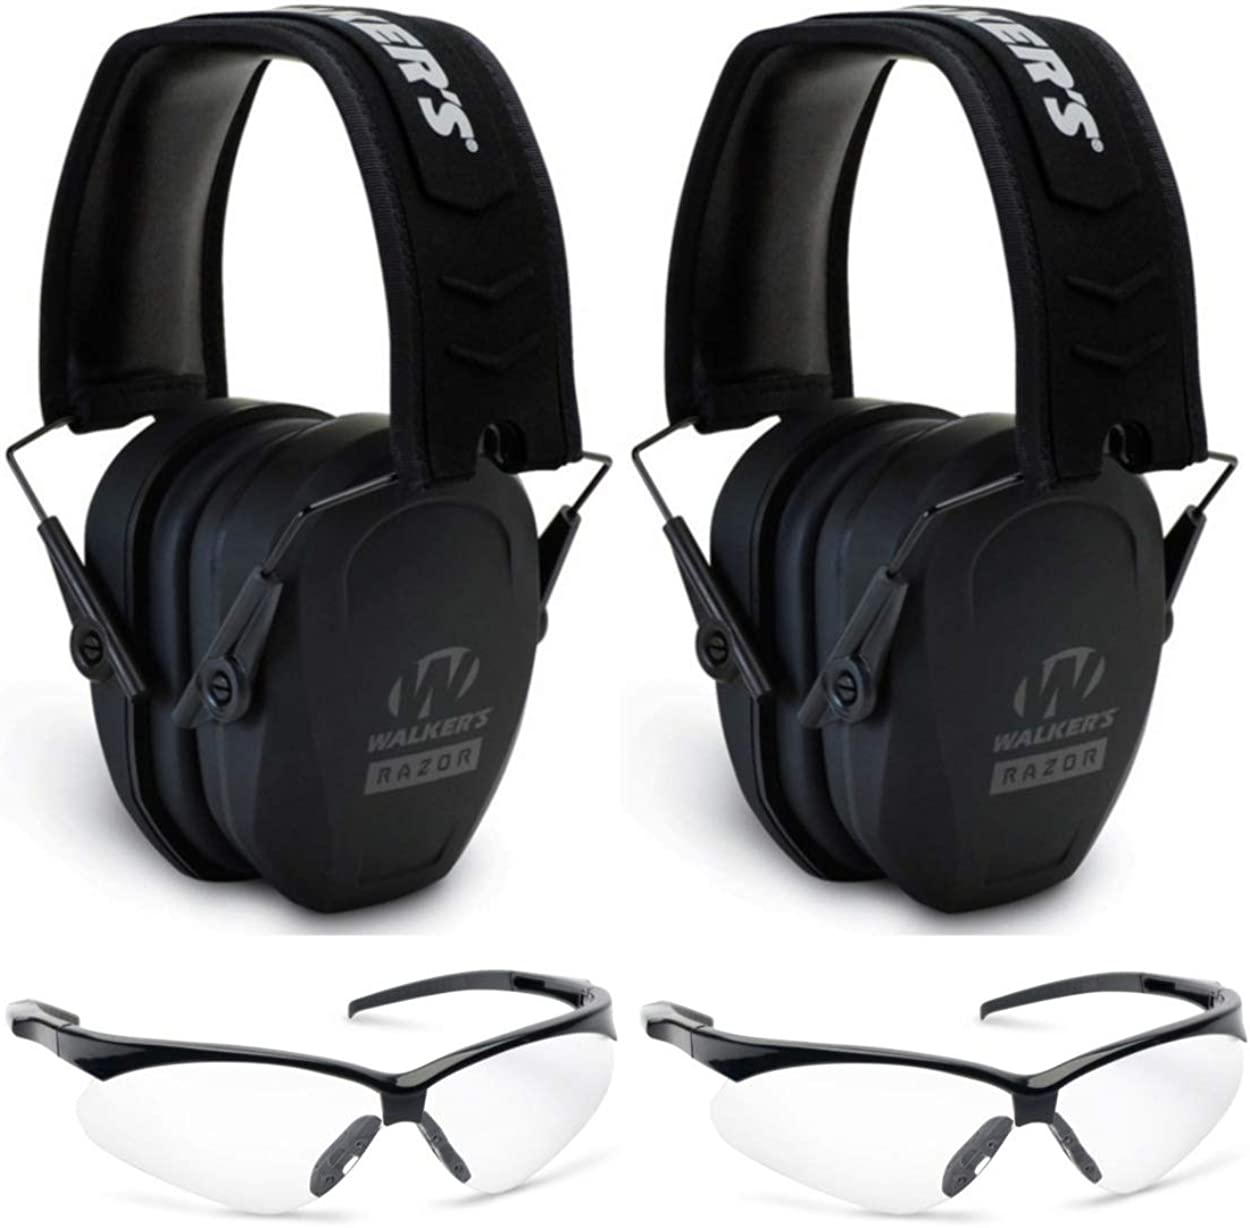 Walkers Game Ear Double Range Safety Kit: Two Razor Slim Hearing Protection Muffs & Two Crosshair Glasses Set